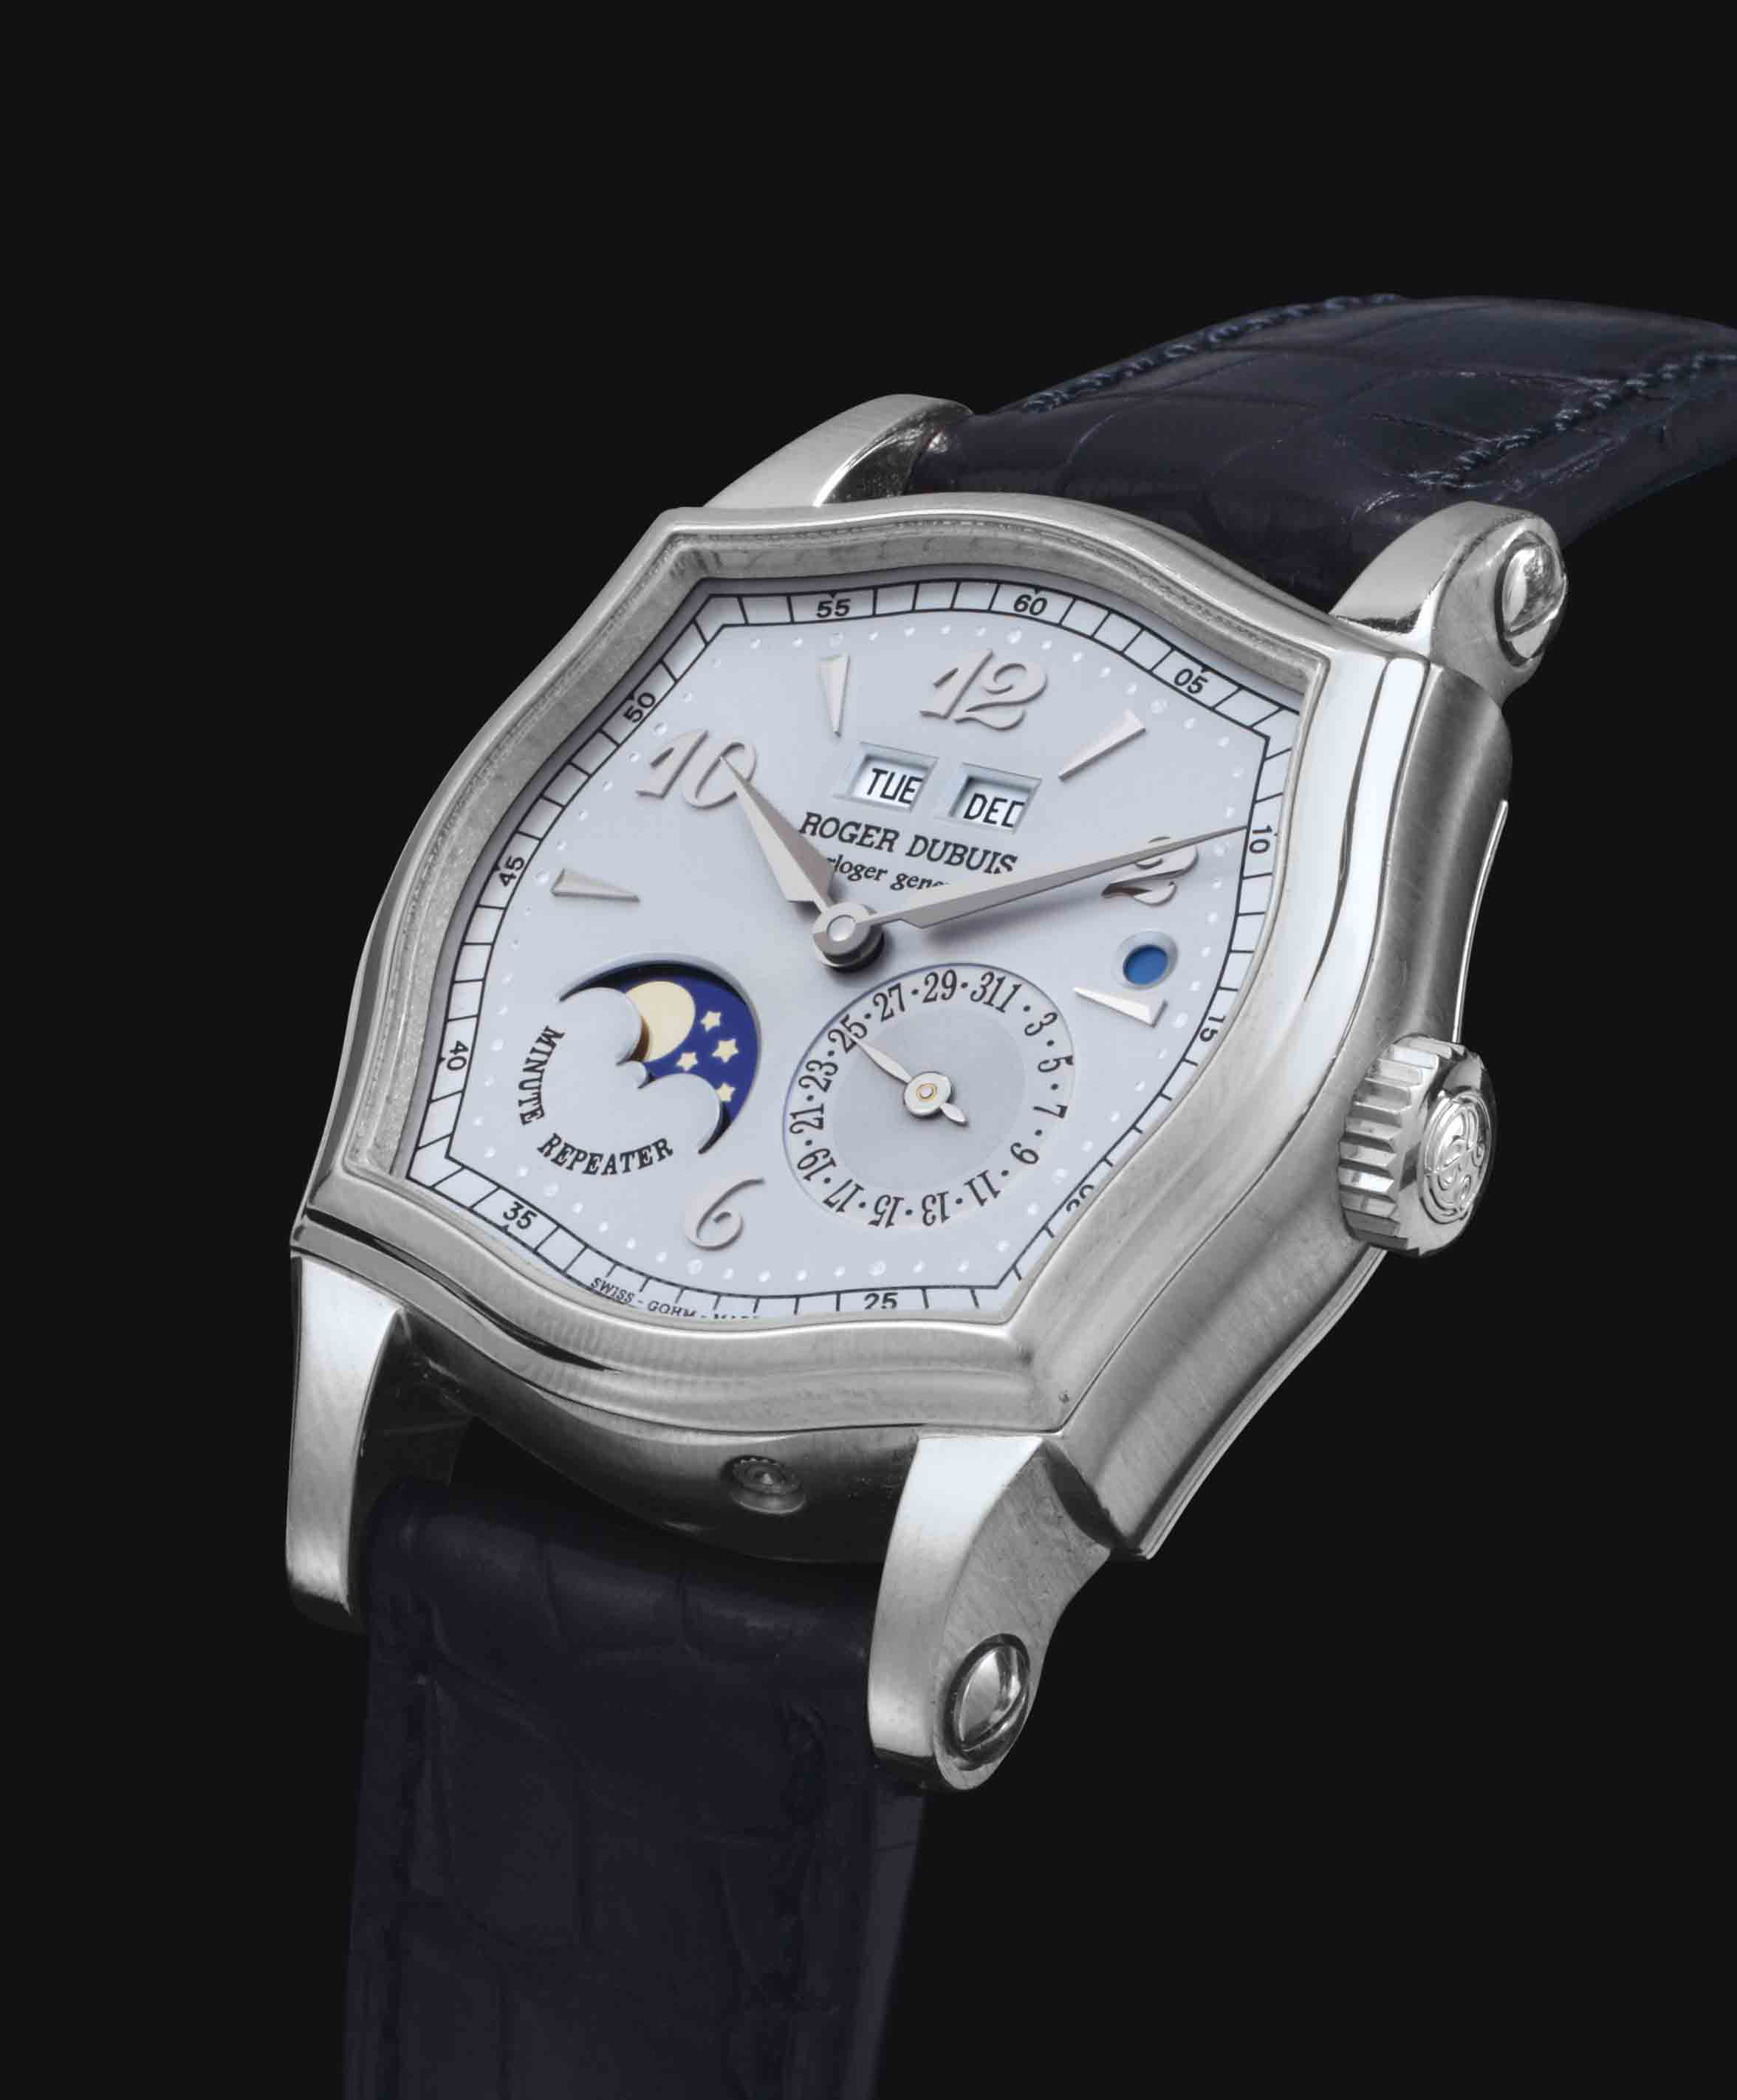 Roger Dubuis.  A Fine And Rare 18k White Gold Limited Edition Minute Repeating Perpetual Calendar Wristwatch With Original Certificate Of Origin, Additional Hard Back And Presentation Box